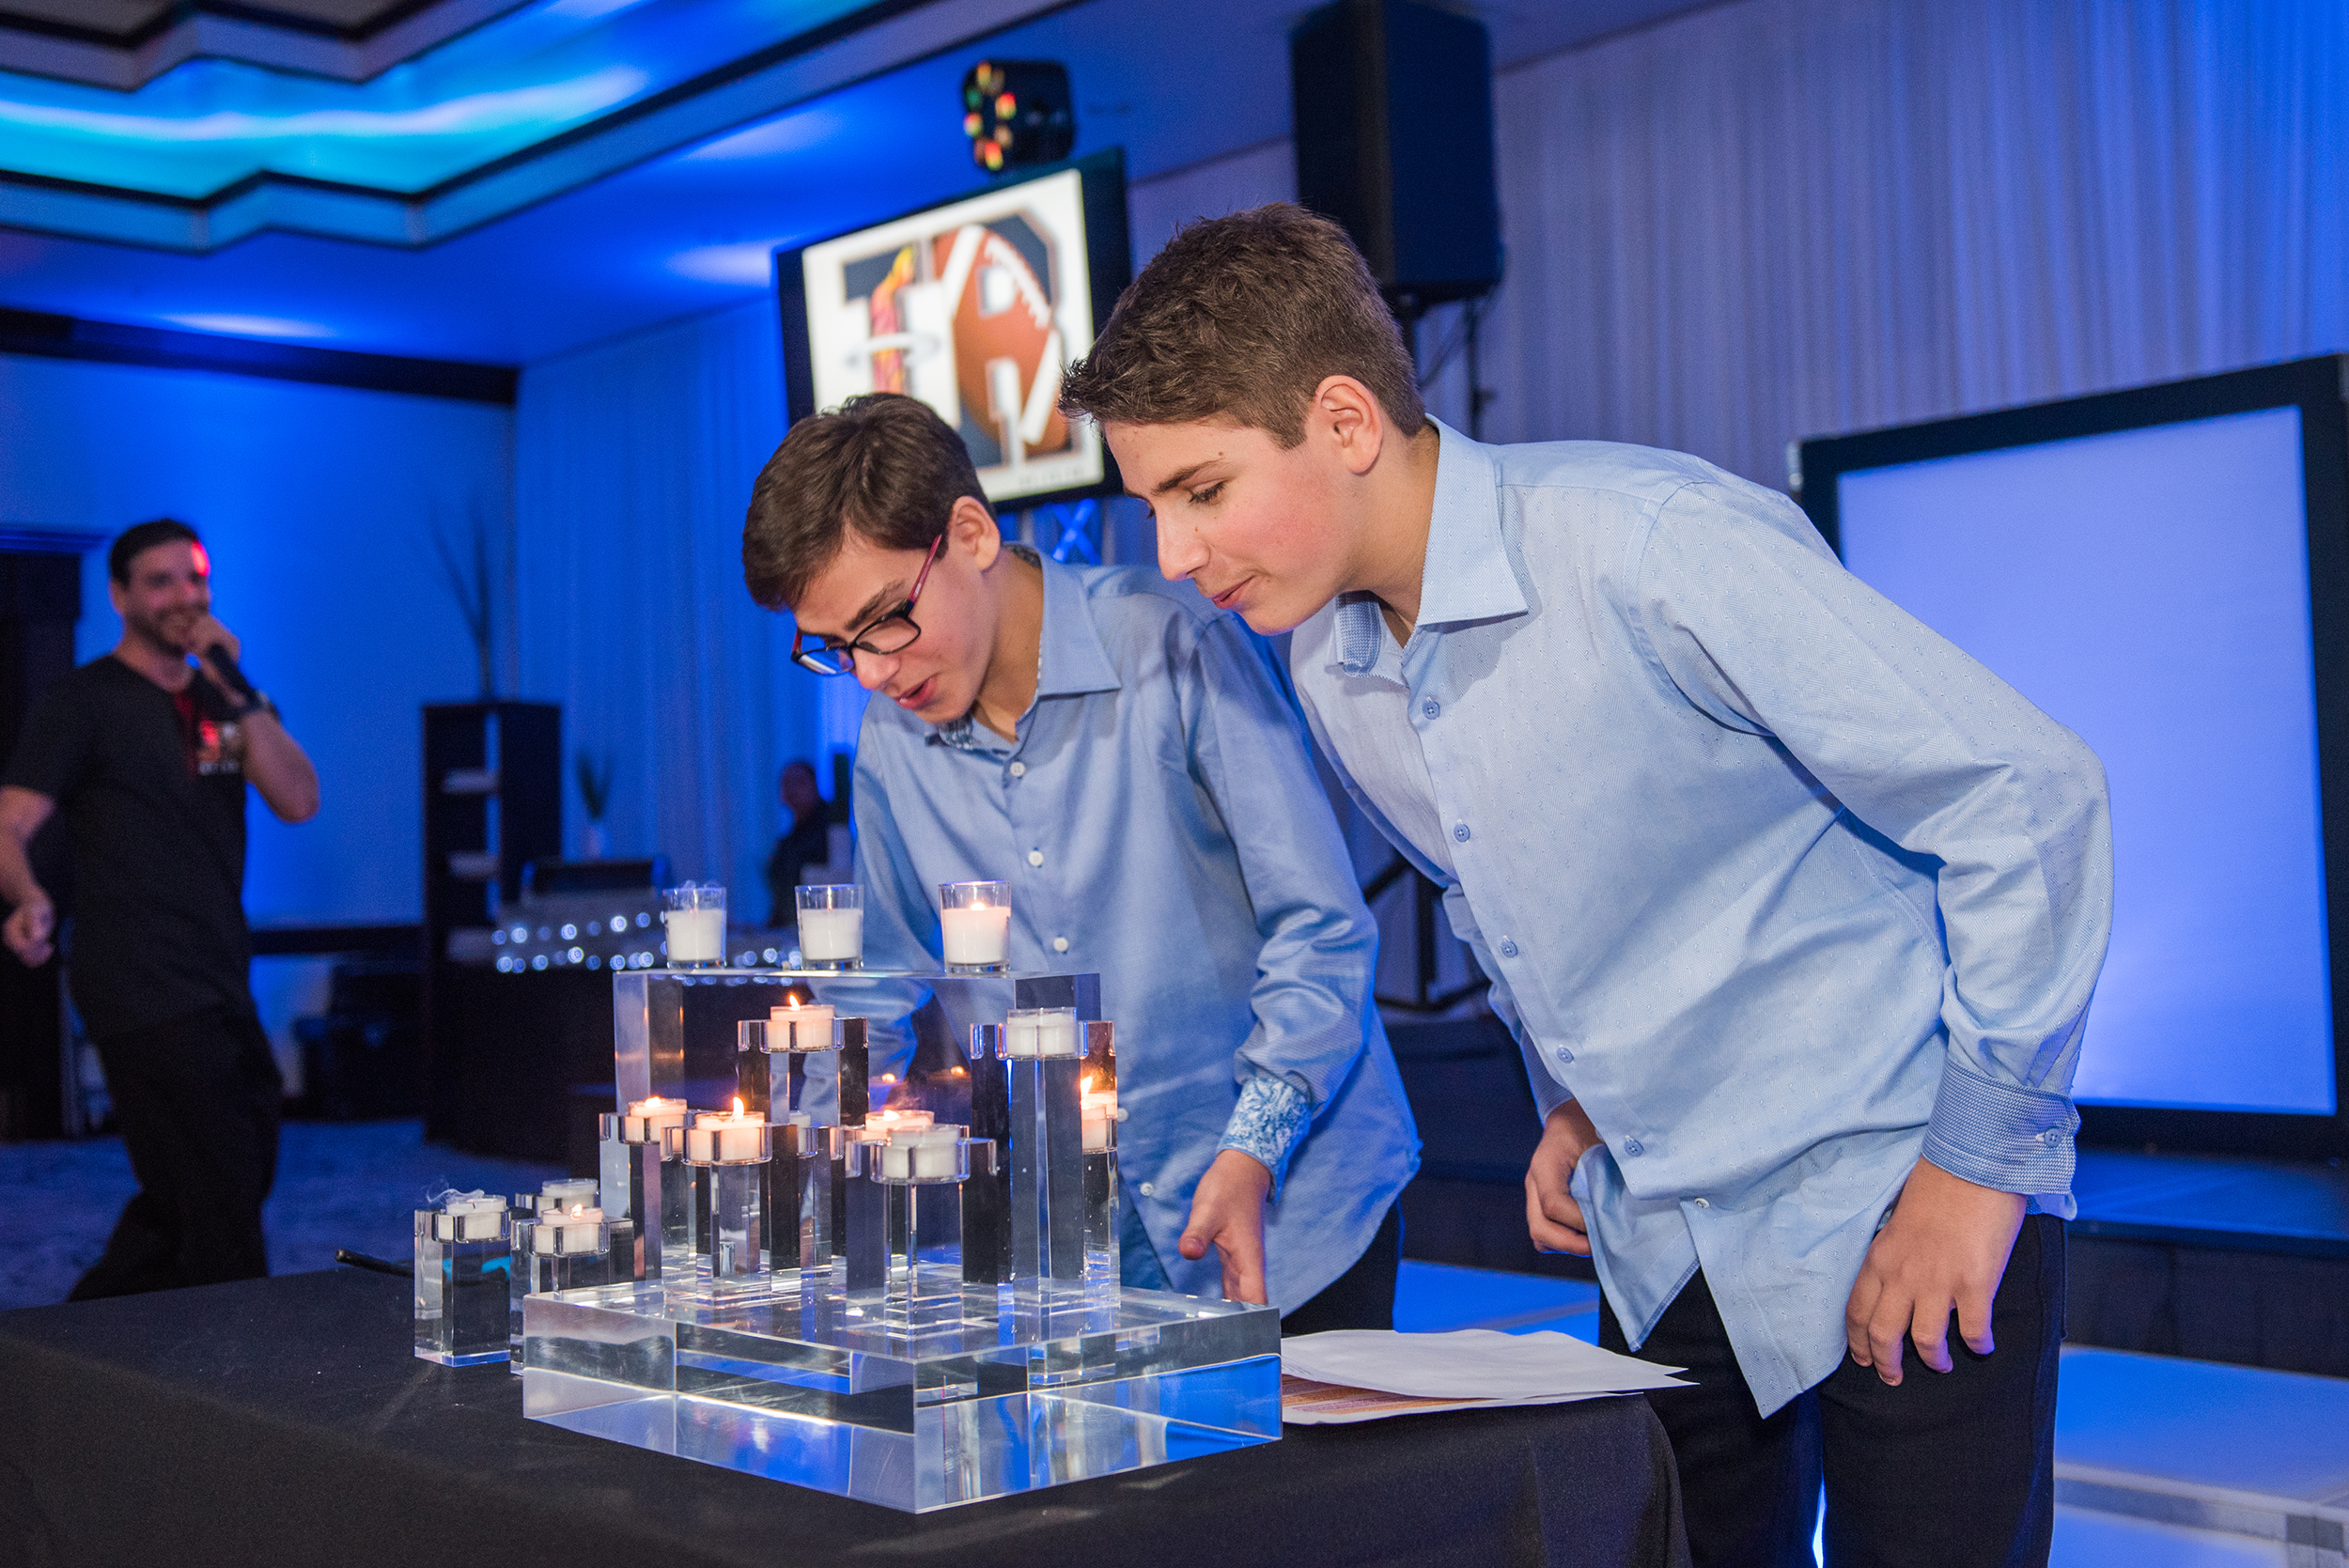 mitzvah-event-photography-south-florida-alison-frank-photography_16.jpg